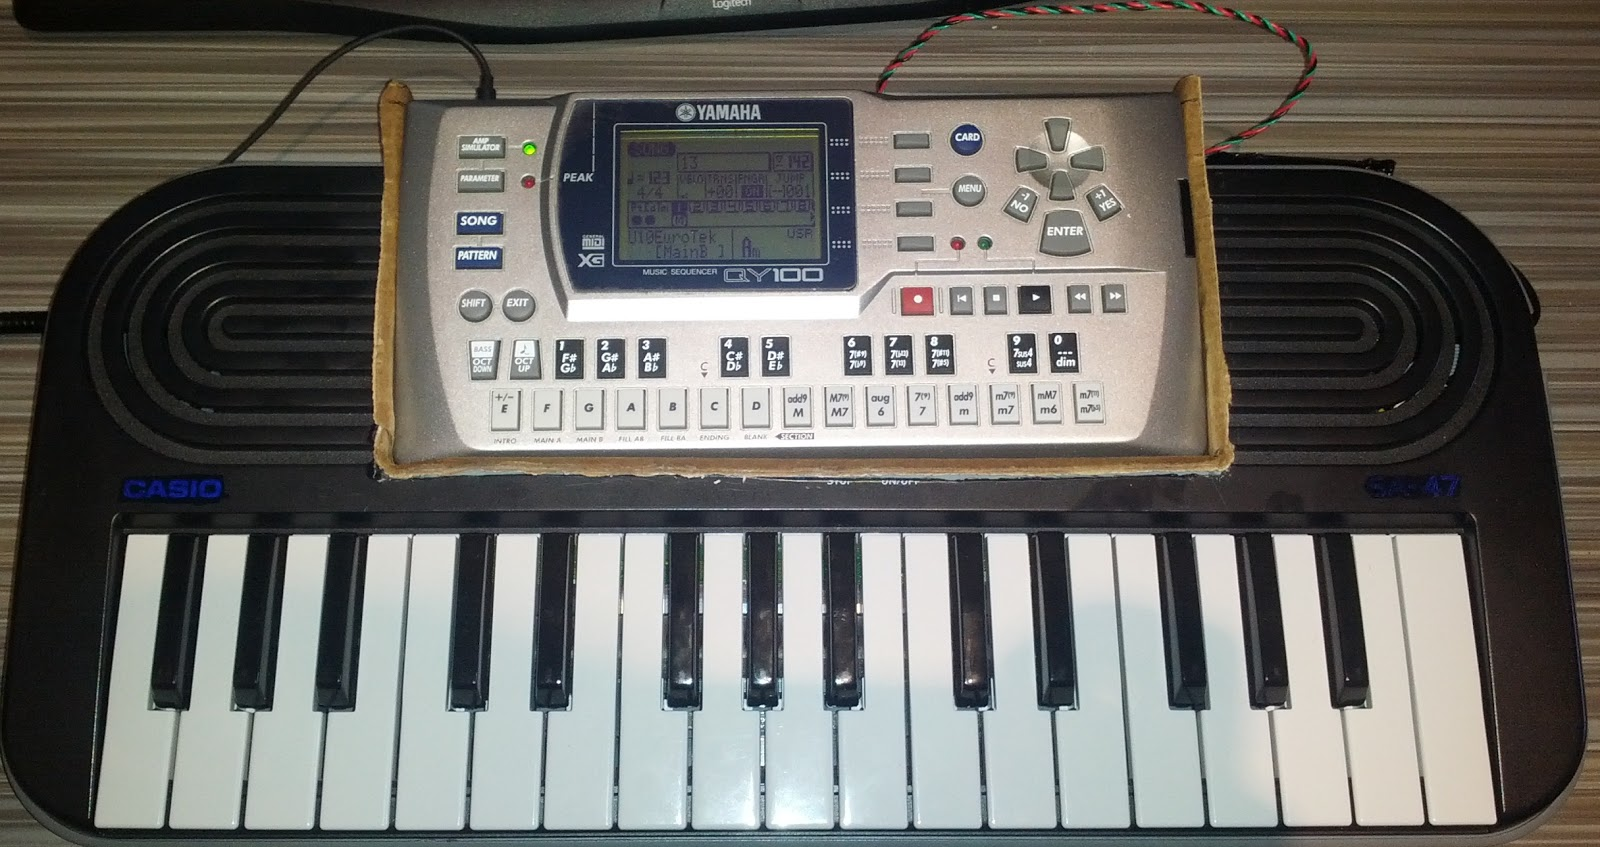 Code Tinker Hack How To Turn Piano Toy Into Midi Keyboard Using Yamaha Wiring Diagram Below Is Qy 100 Sound Module Fits Nicely